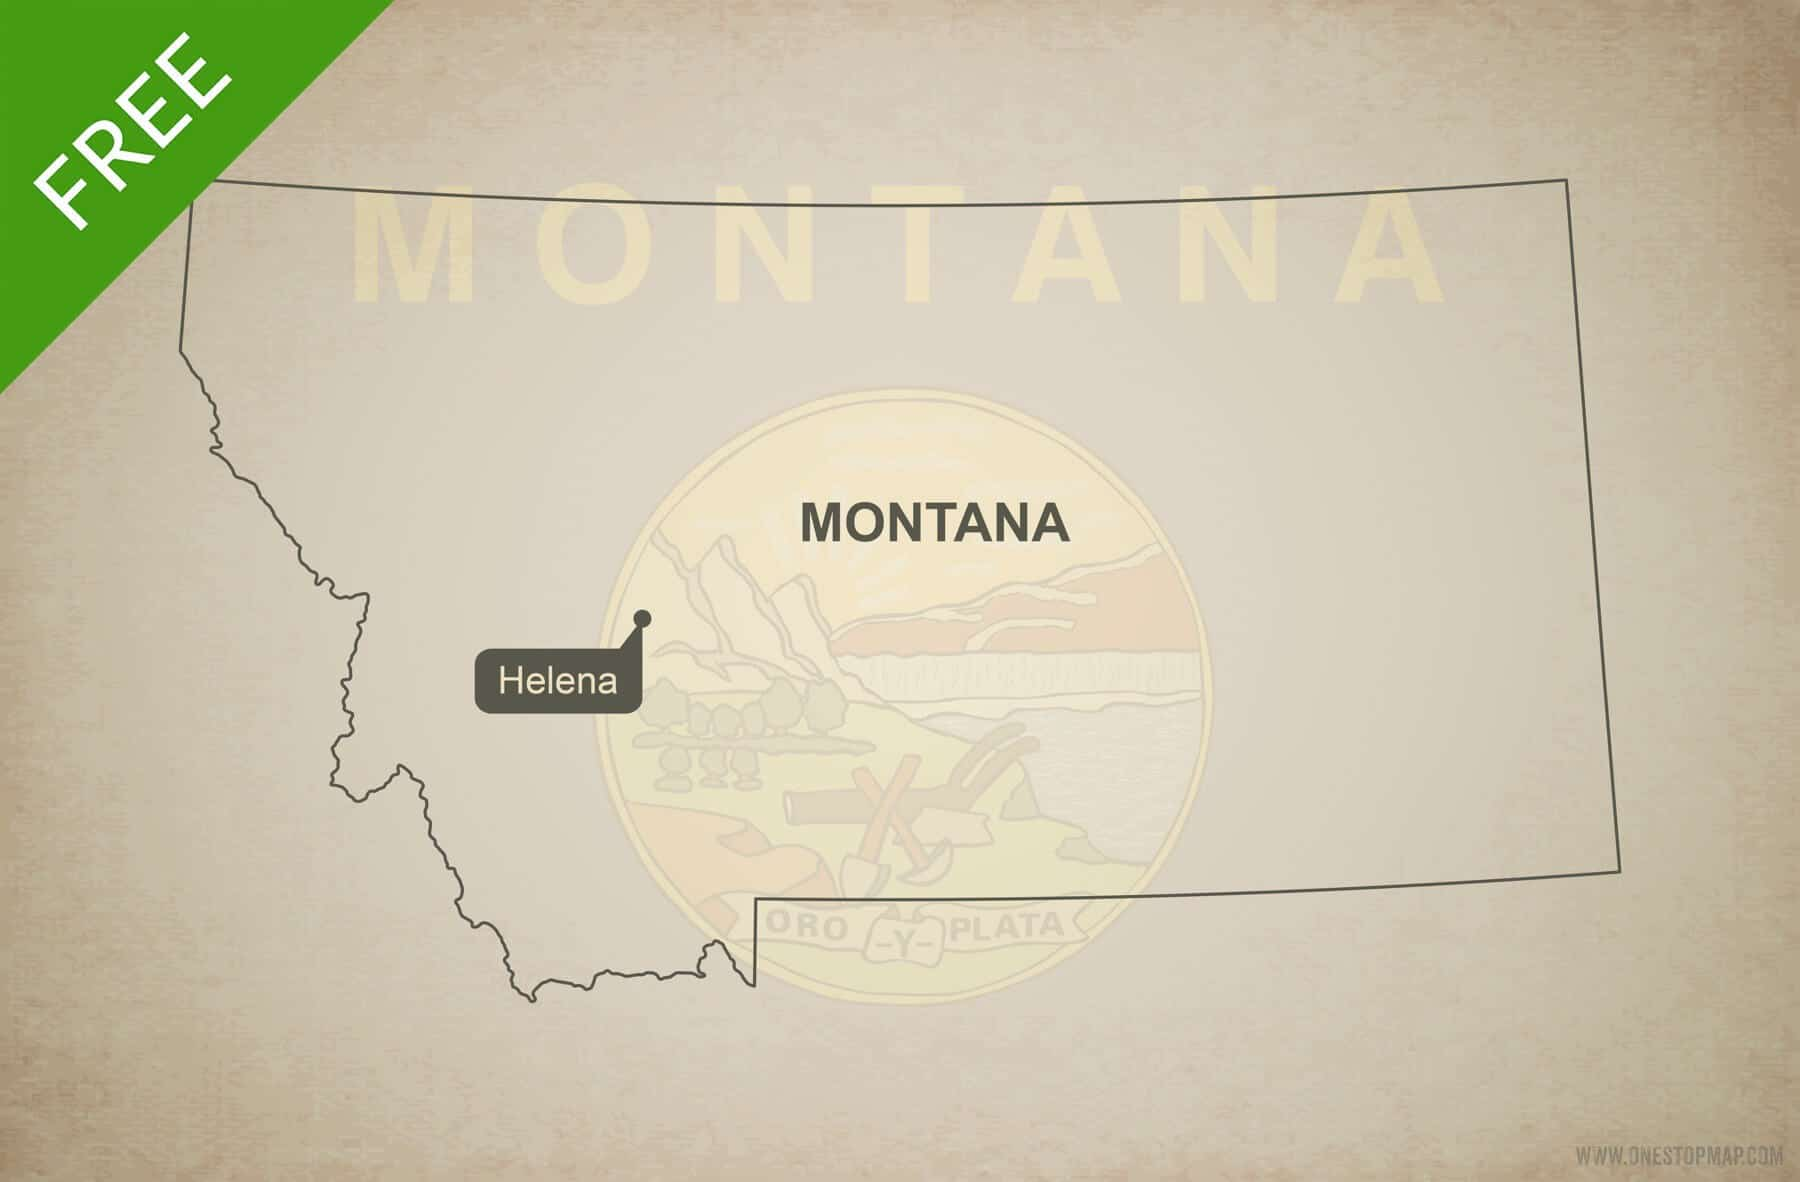 filling in the blanks of montana Montana blank map blank county map of montana you can save it as an image by clicking on the fill-in-the-blanks map to access the original montana blank map file.